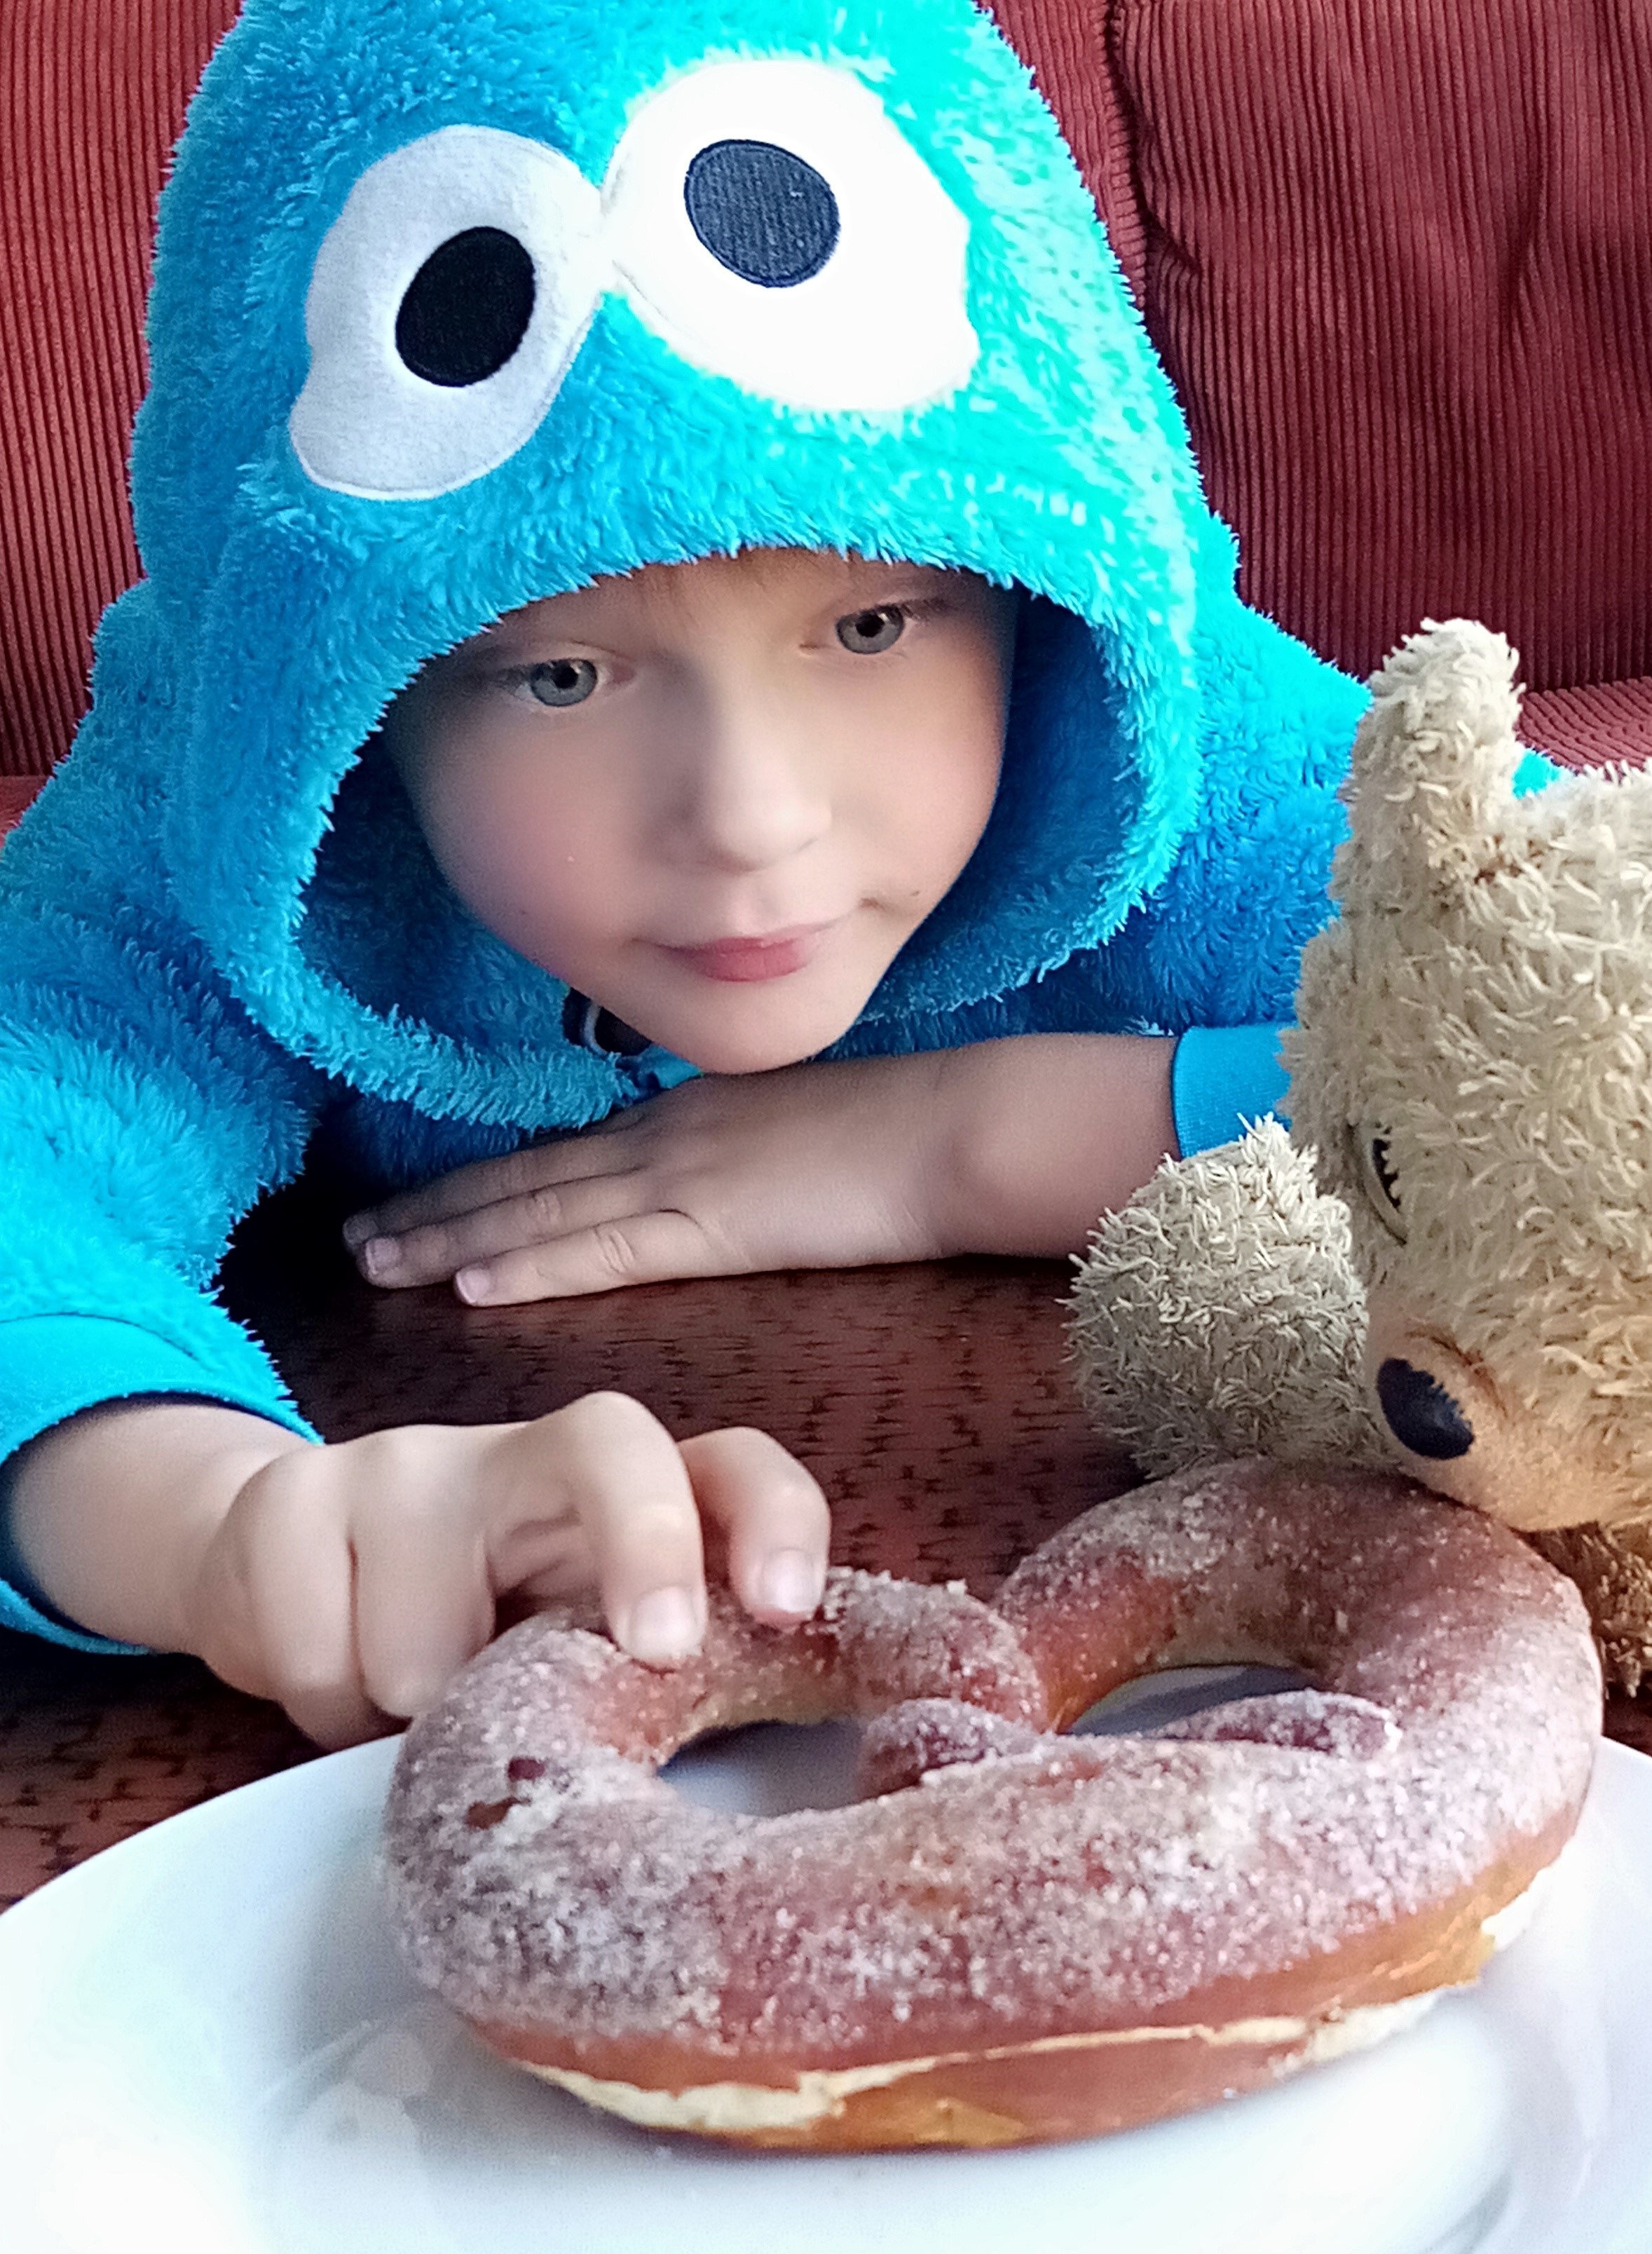 Picture of young boy reaching for a doughnout on a plate.